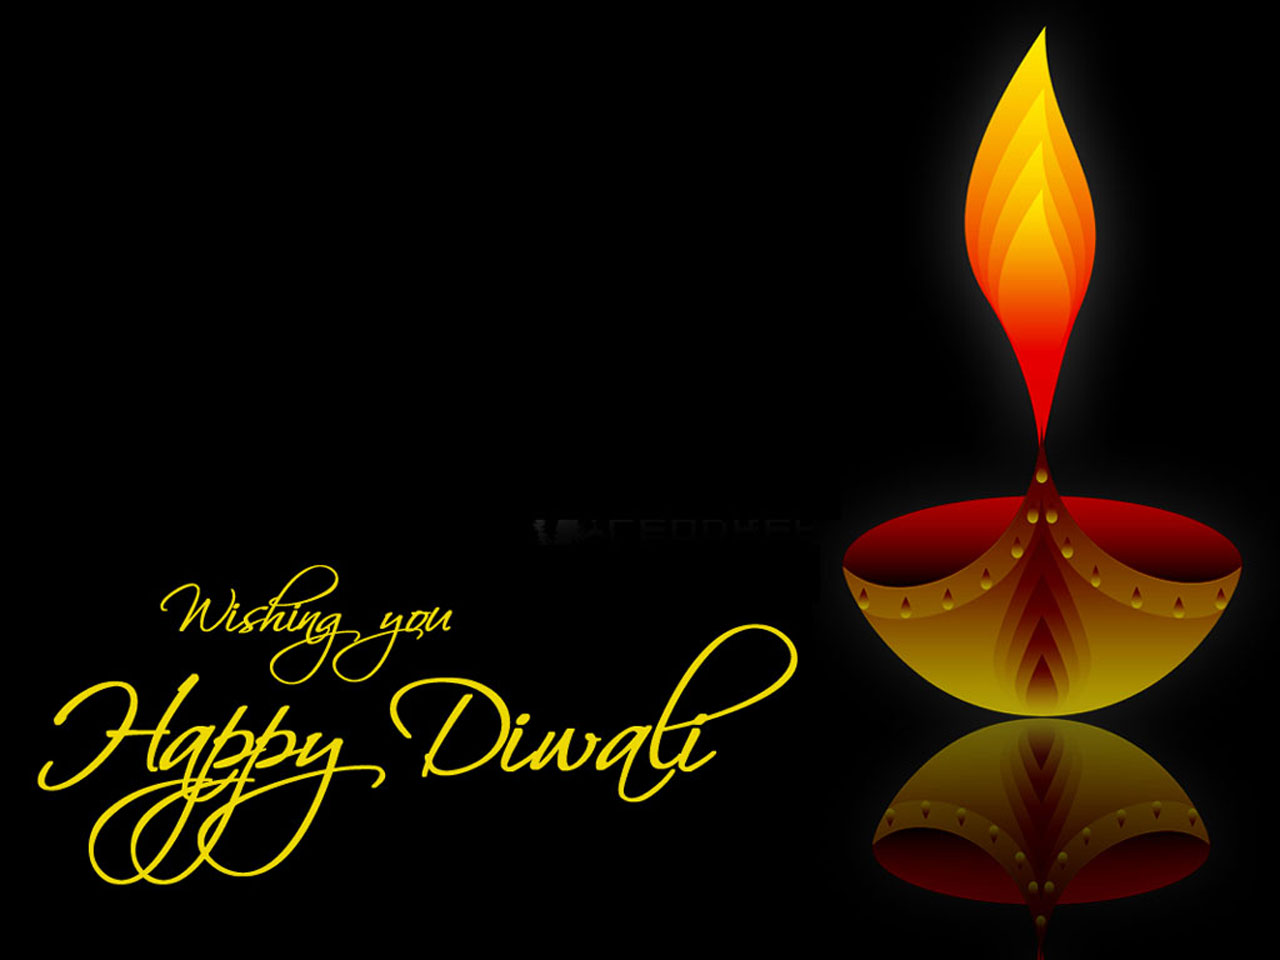 Happy Diwali 2017 images, quotes, wishes, SMS, greetings ...